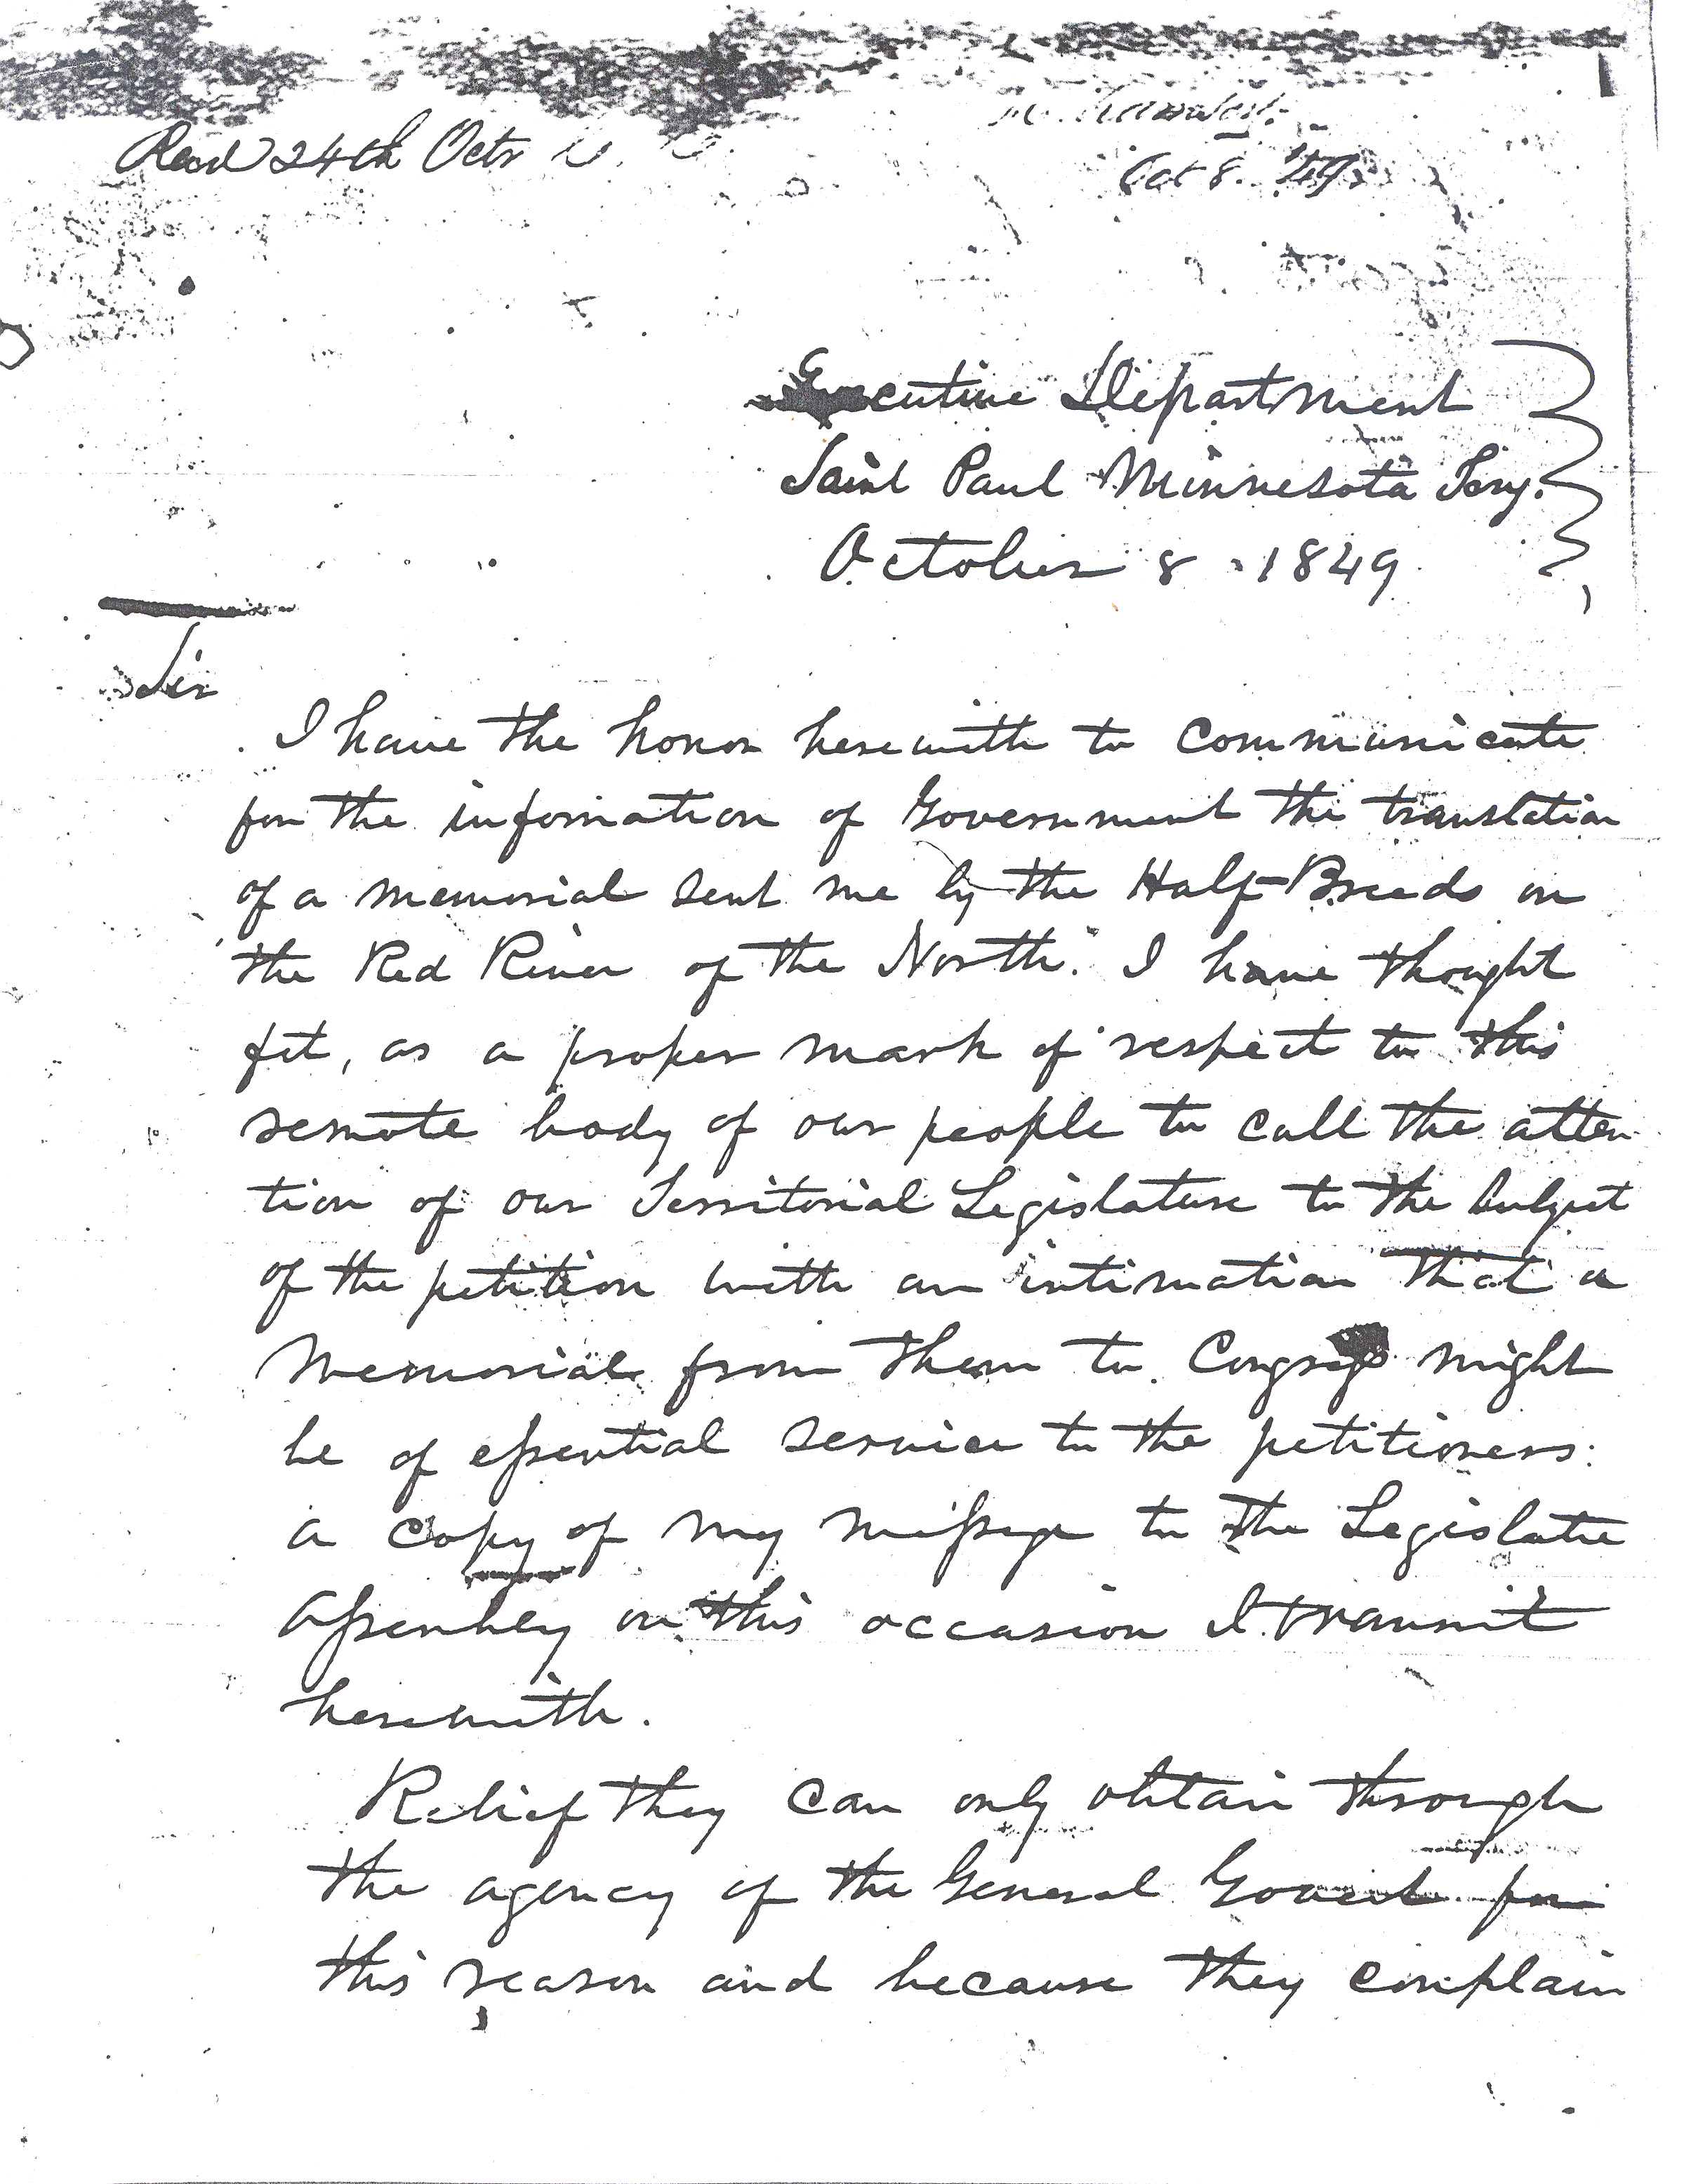 Ramsey letter, page 1